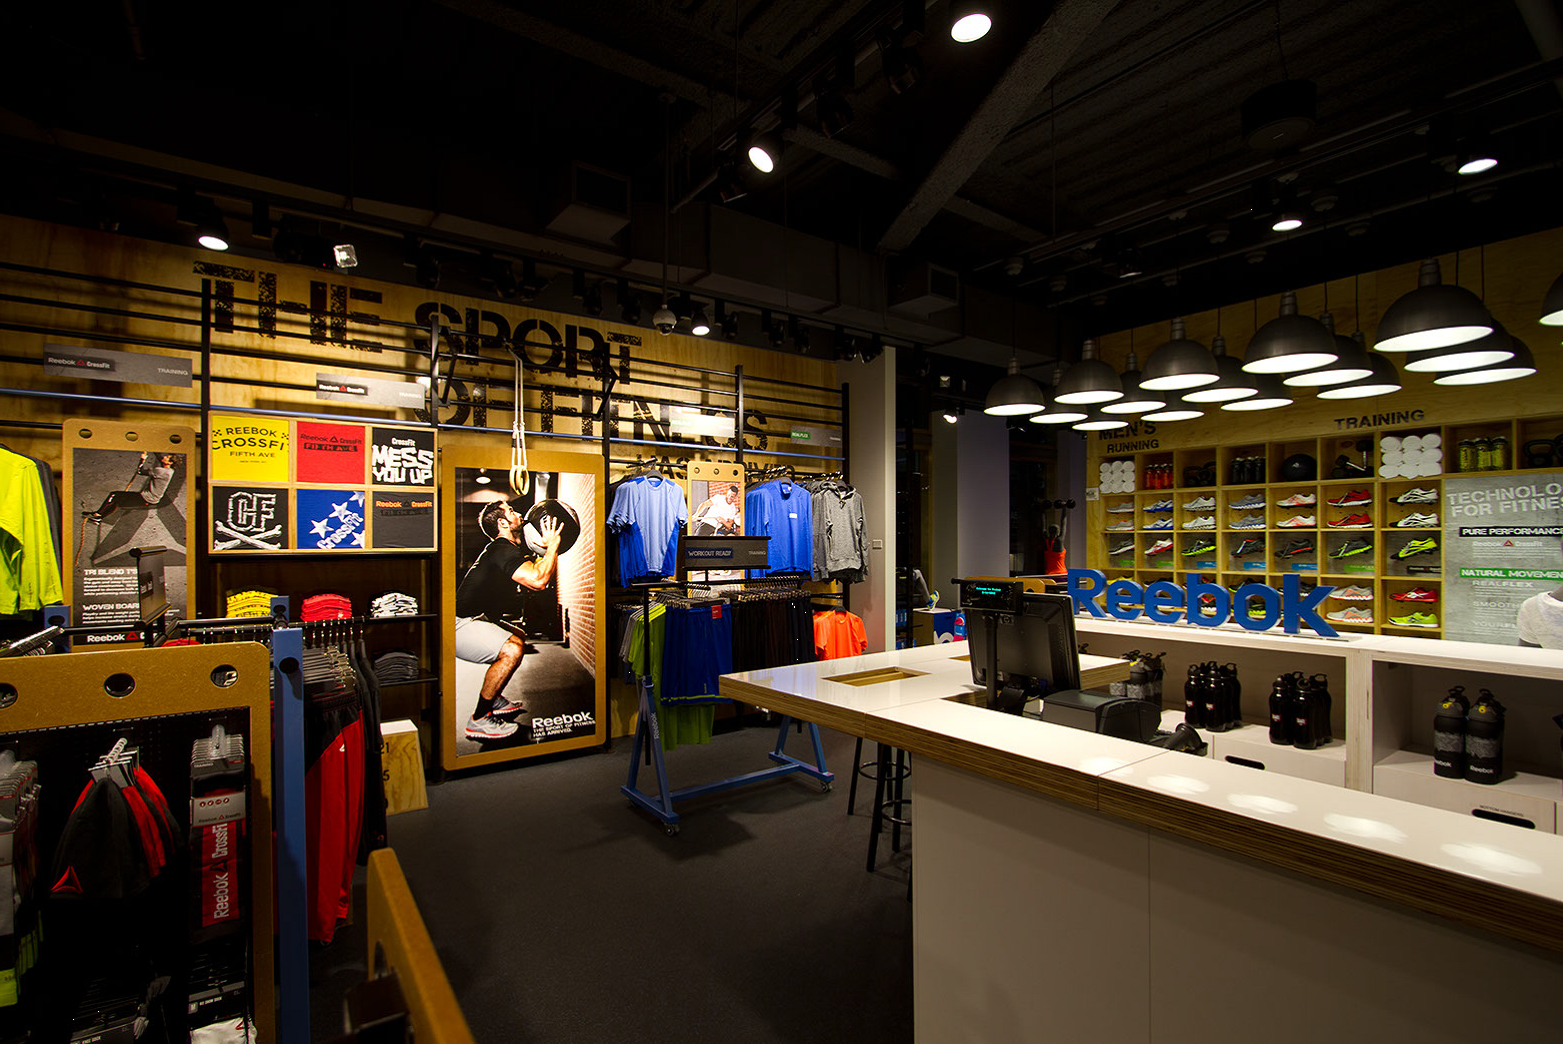 reebok fit hub store crossfit gym opens in new york city interior design shops nyc FitHub in NYC. FitHub in NYC Gym Interior, Retail Experience, Crossfit Gym, Store  Design ...